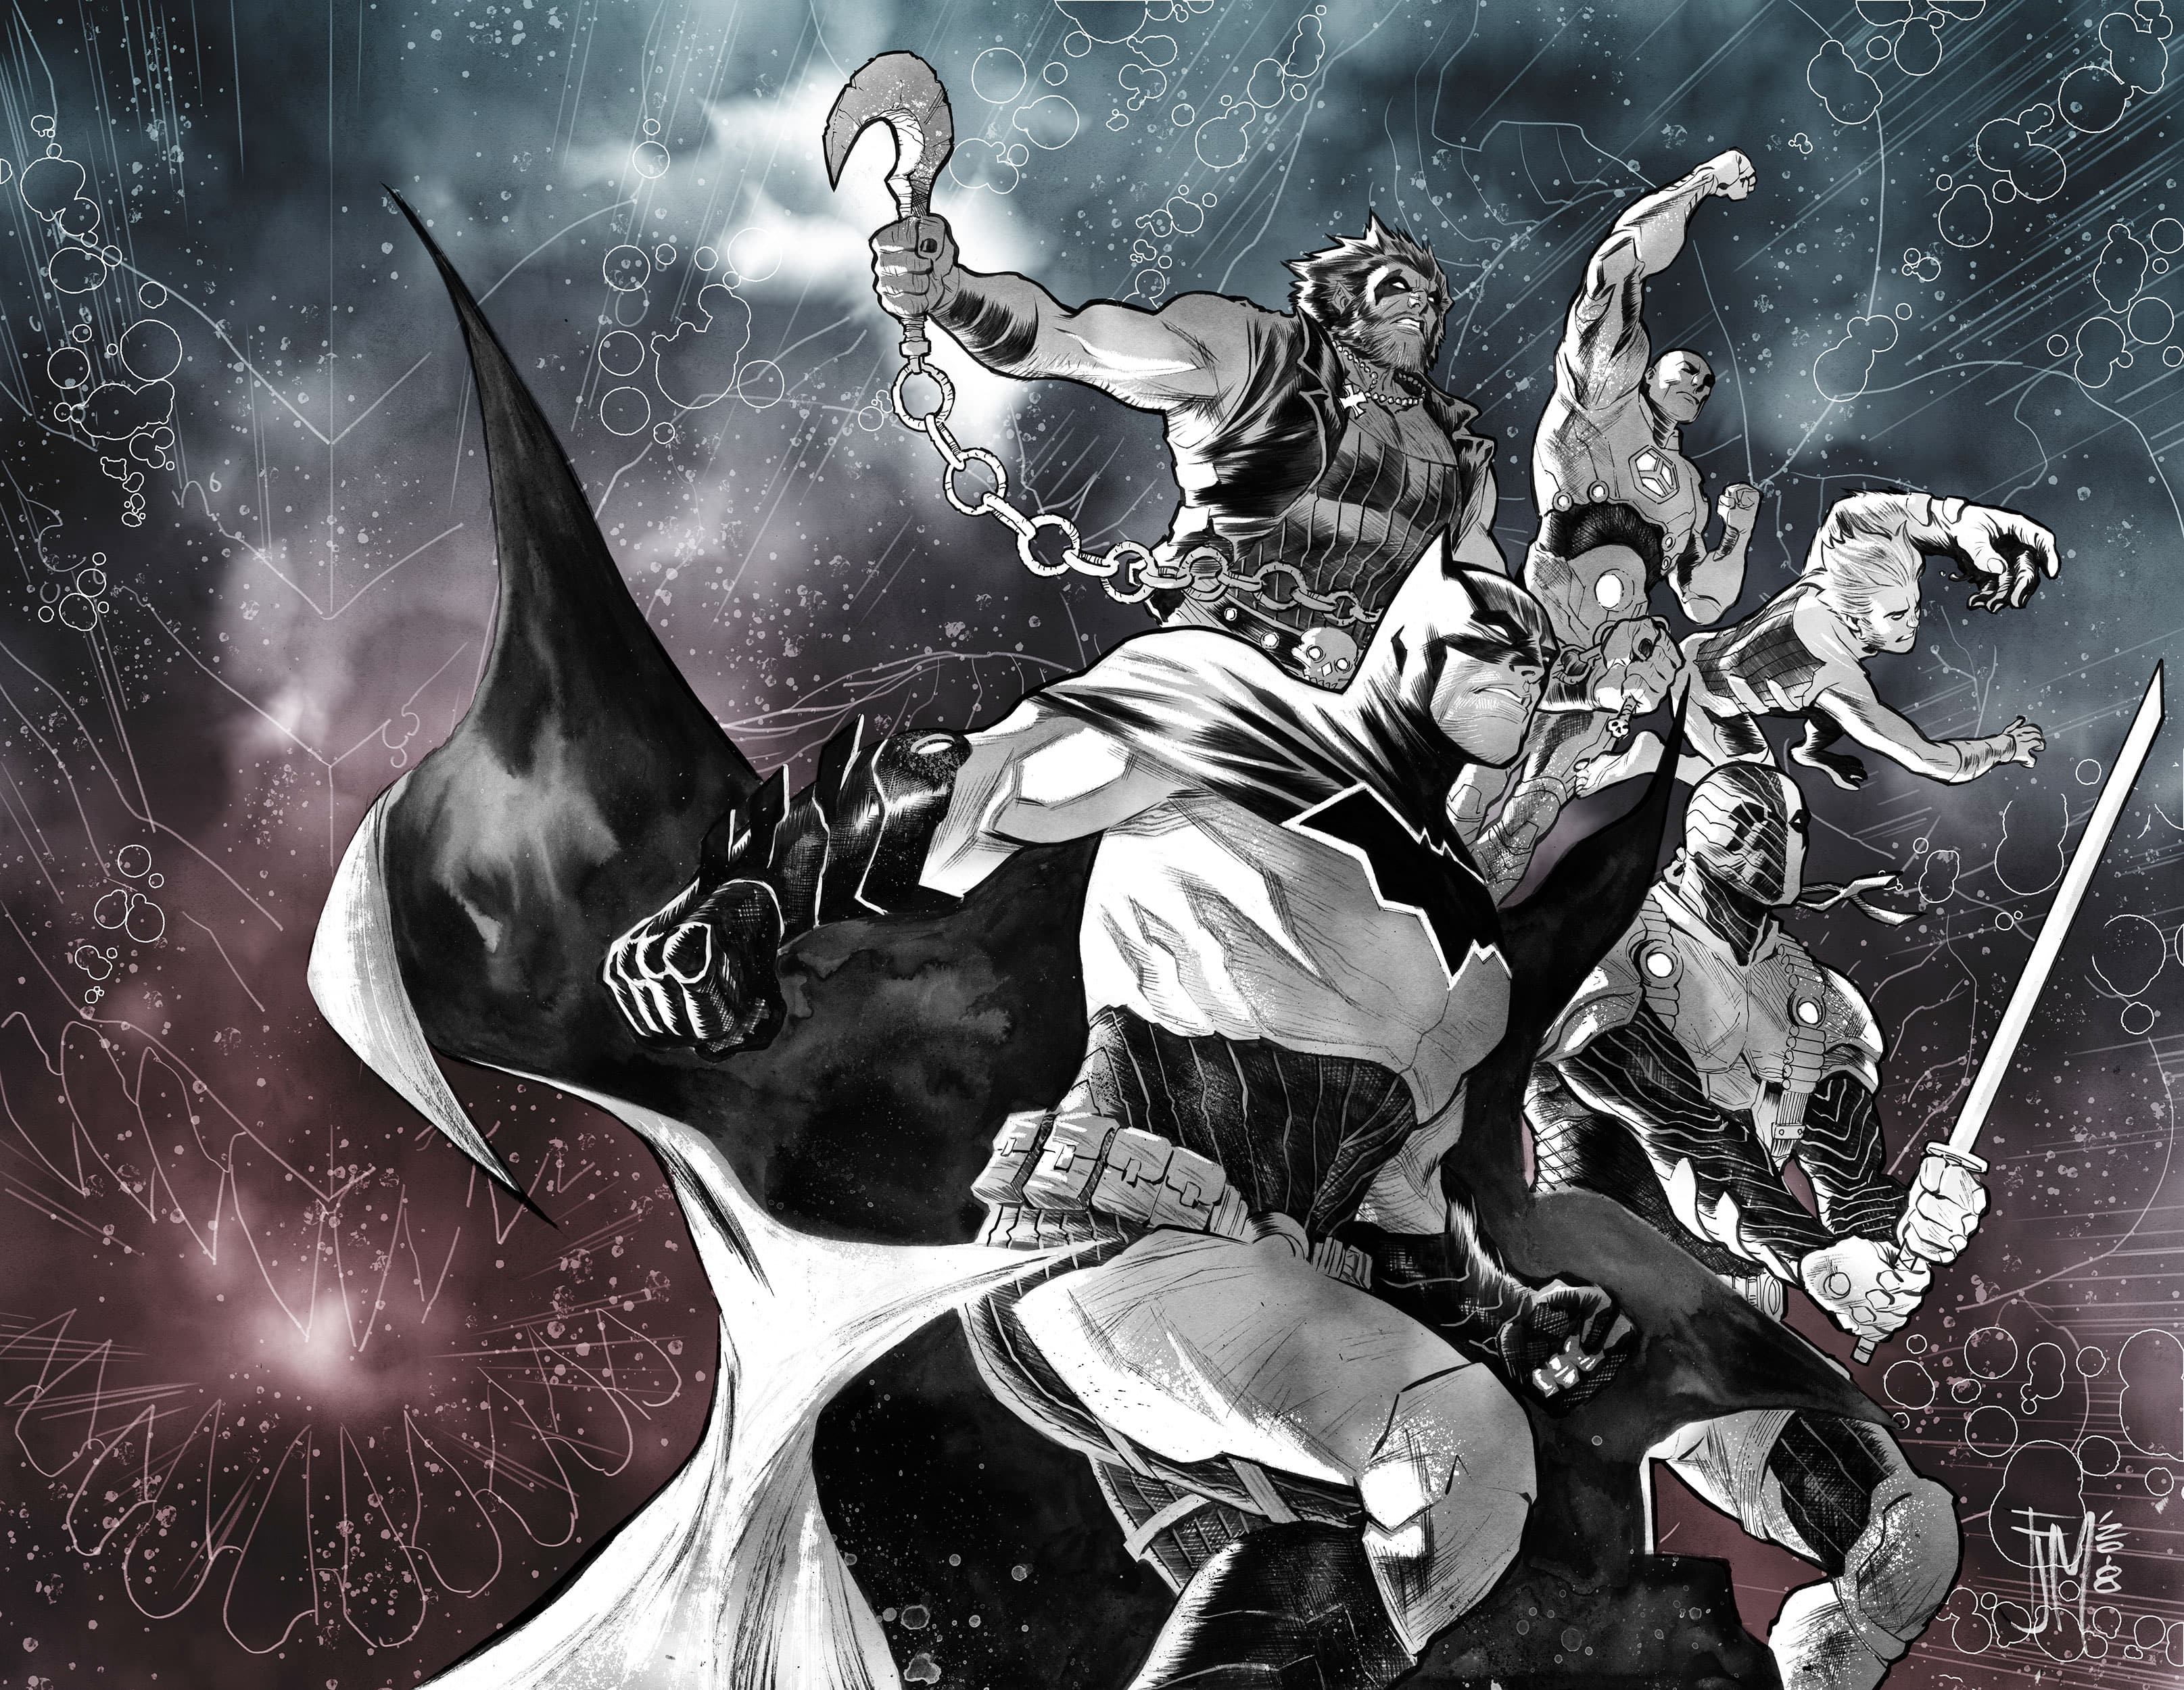 Weekly Four-Issue Miniseries Follows Events from the Cataclysmic Conclusion of DARK NIGHTS: METAL